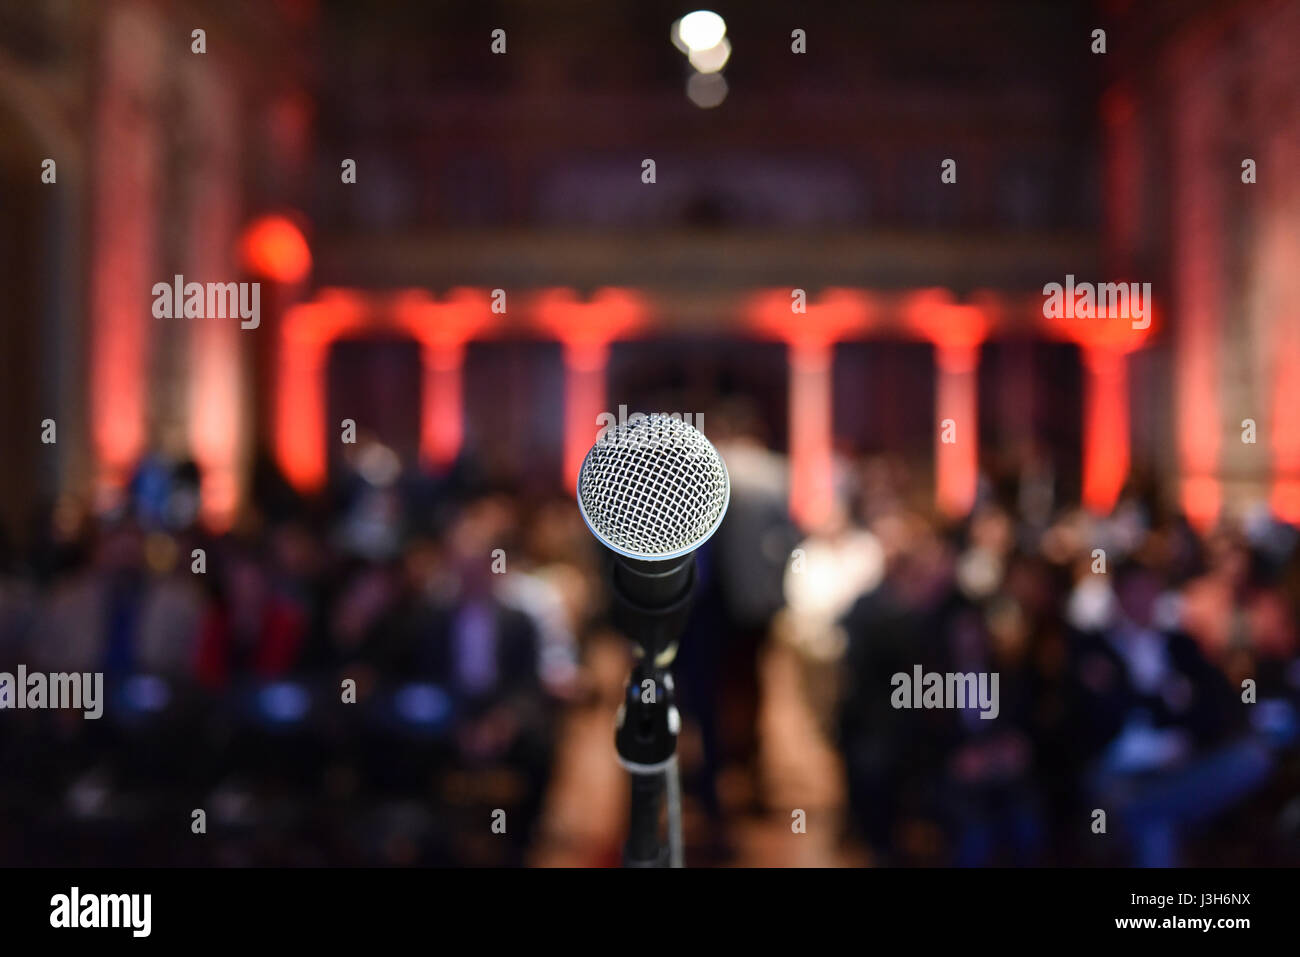 Stock photo dramatic red old fashioned elegant theater stage stock - Lone Microphone Mic On Stage Facing Blurred Audience In Art Deco Theatre Stock Image